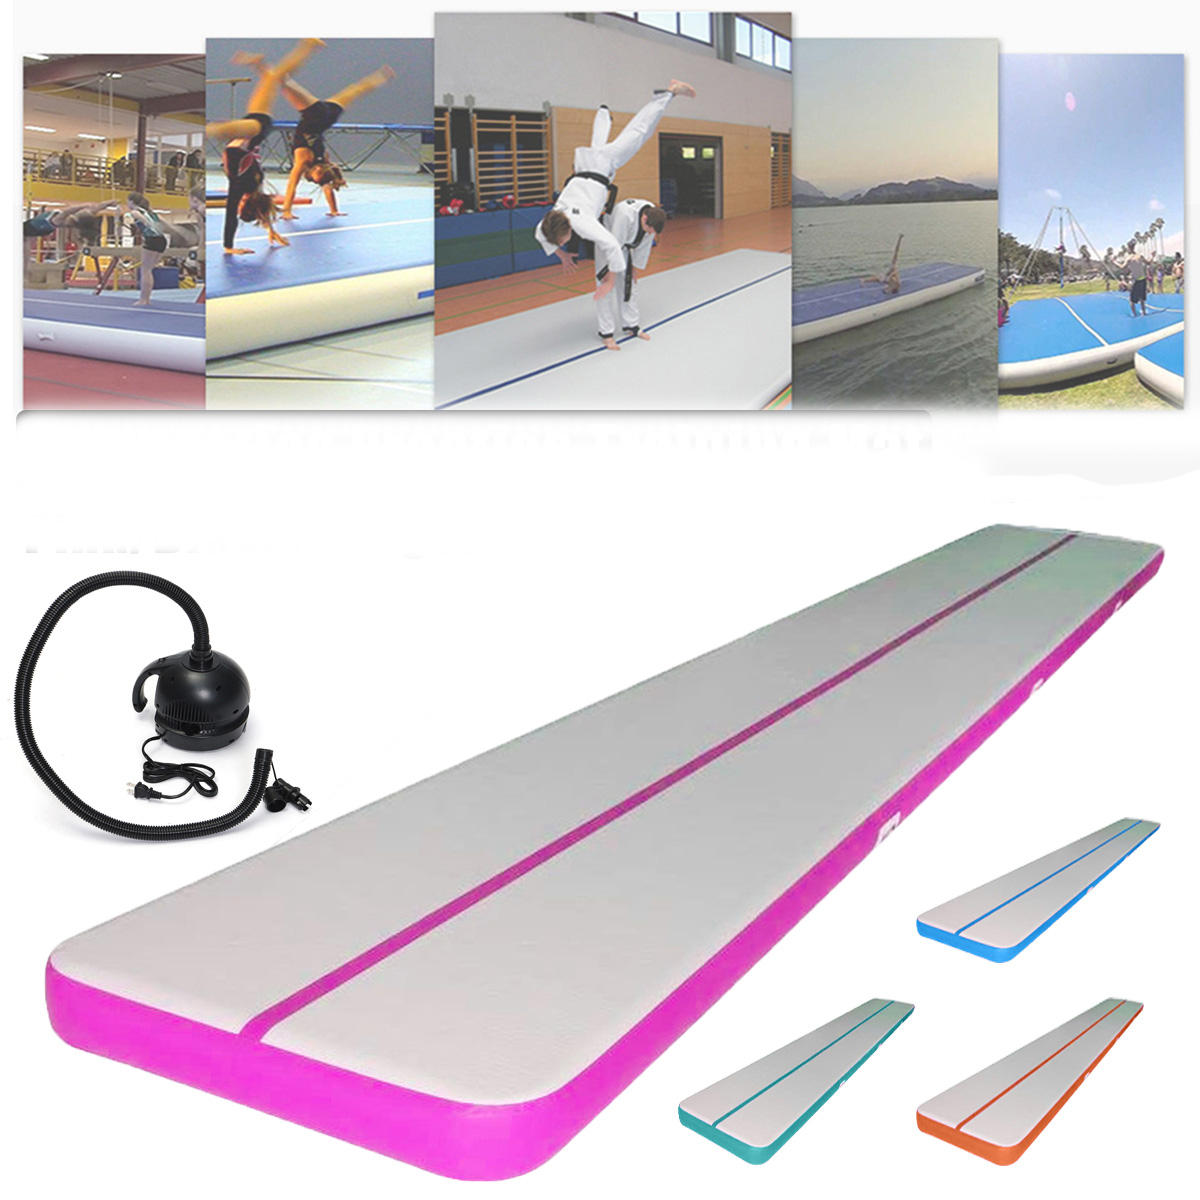 157.4x39.3x3.9inch Inflatable GYM Air Track Mat GYM Practice Mat Tumbling Training Airtrack Gymnastics Mat With 220v Air Pump